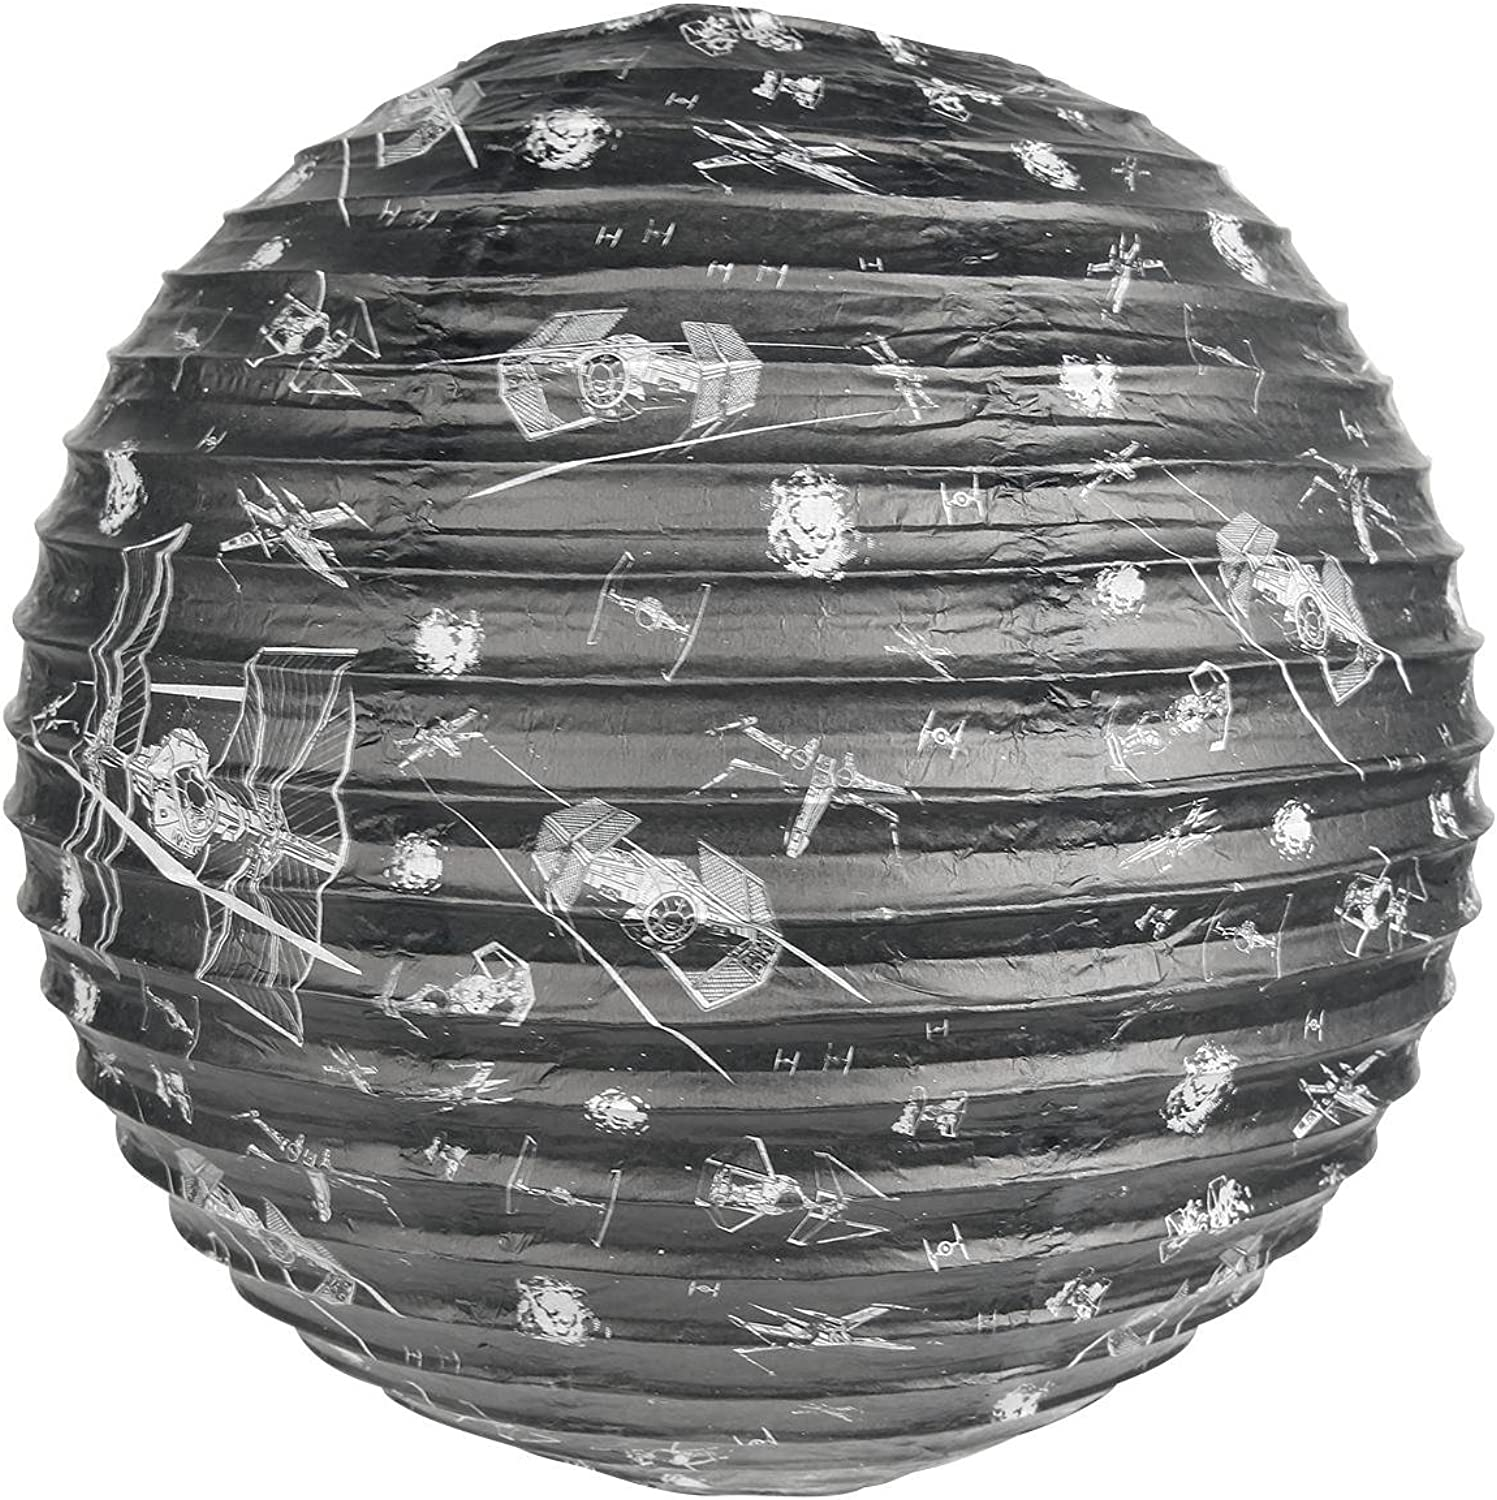 Star Wars XWing v TieFighter Spherical Paper Light Shade